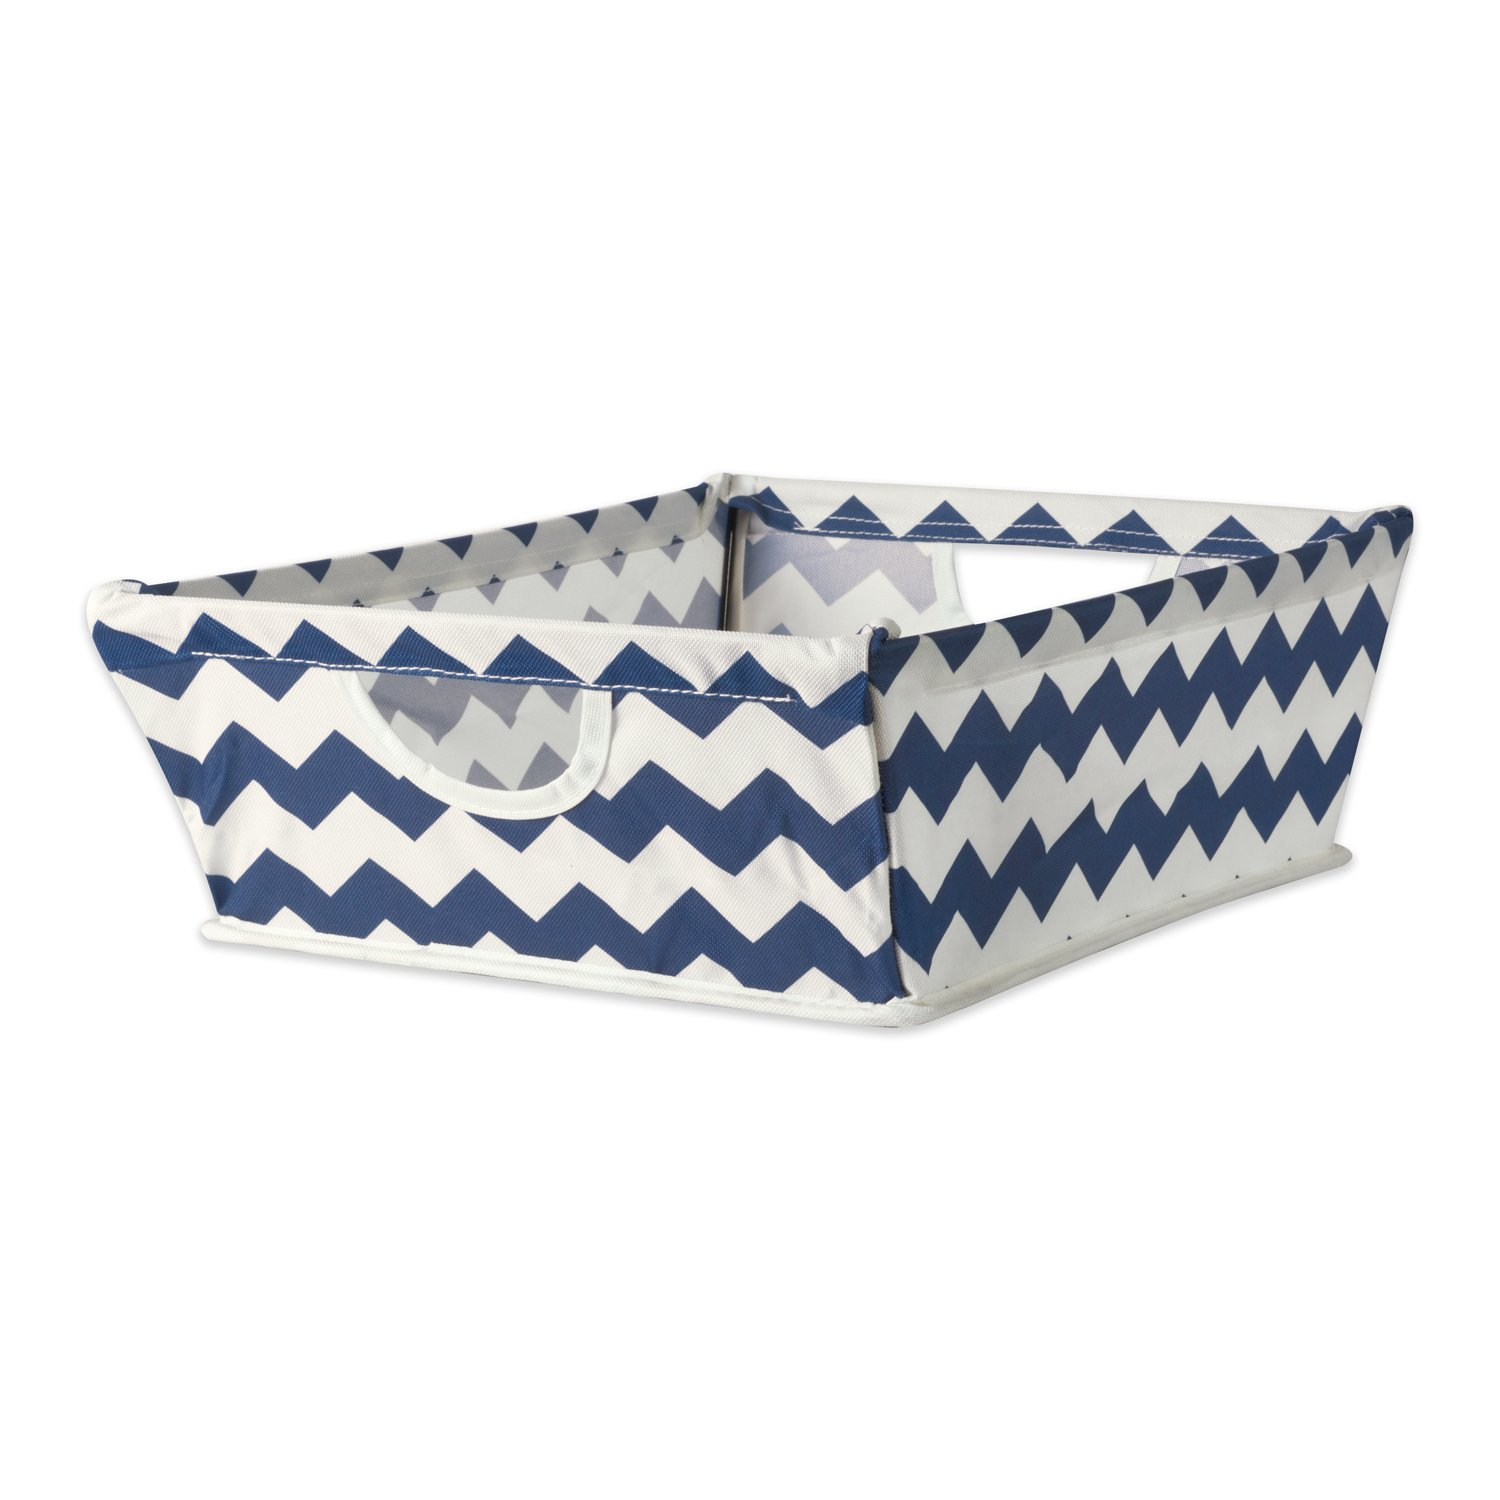 DII Collapsible Polyester Trapezoid Storage Basket, Home Organizational Solution for Office, Bedroom, Closet, & Toys (Tray - 16x12x5'') Nautical Blue Chevron